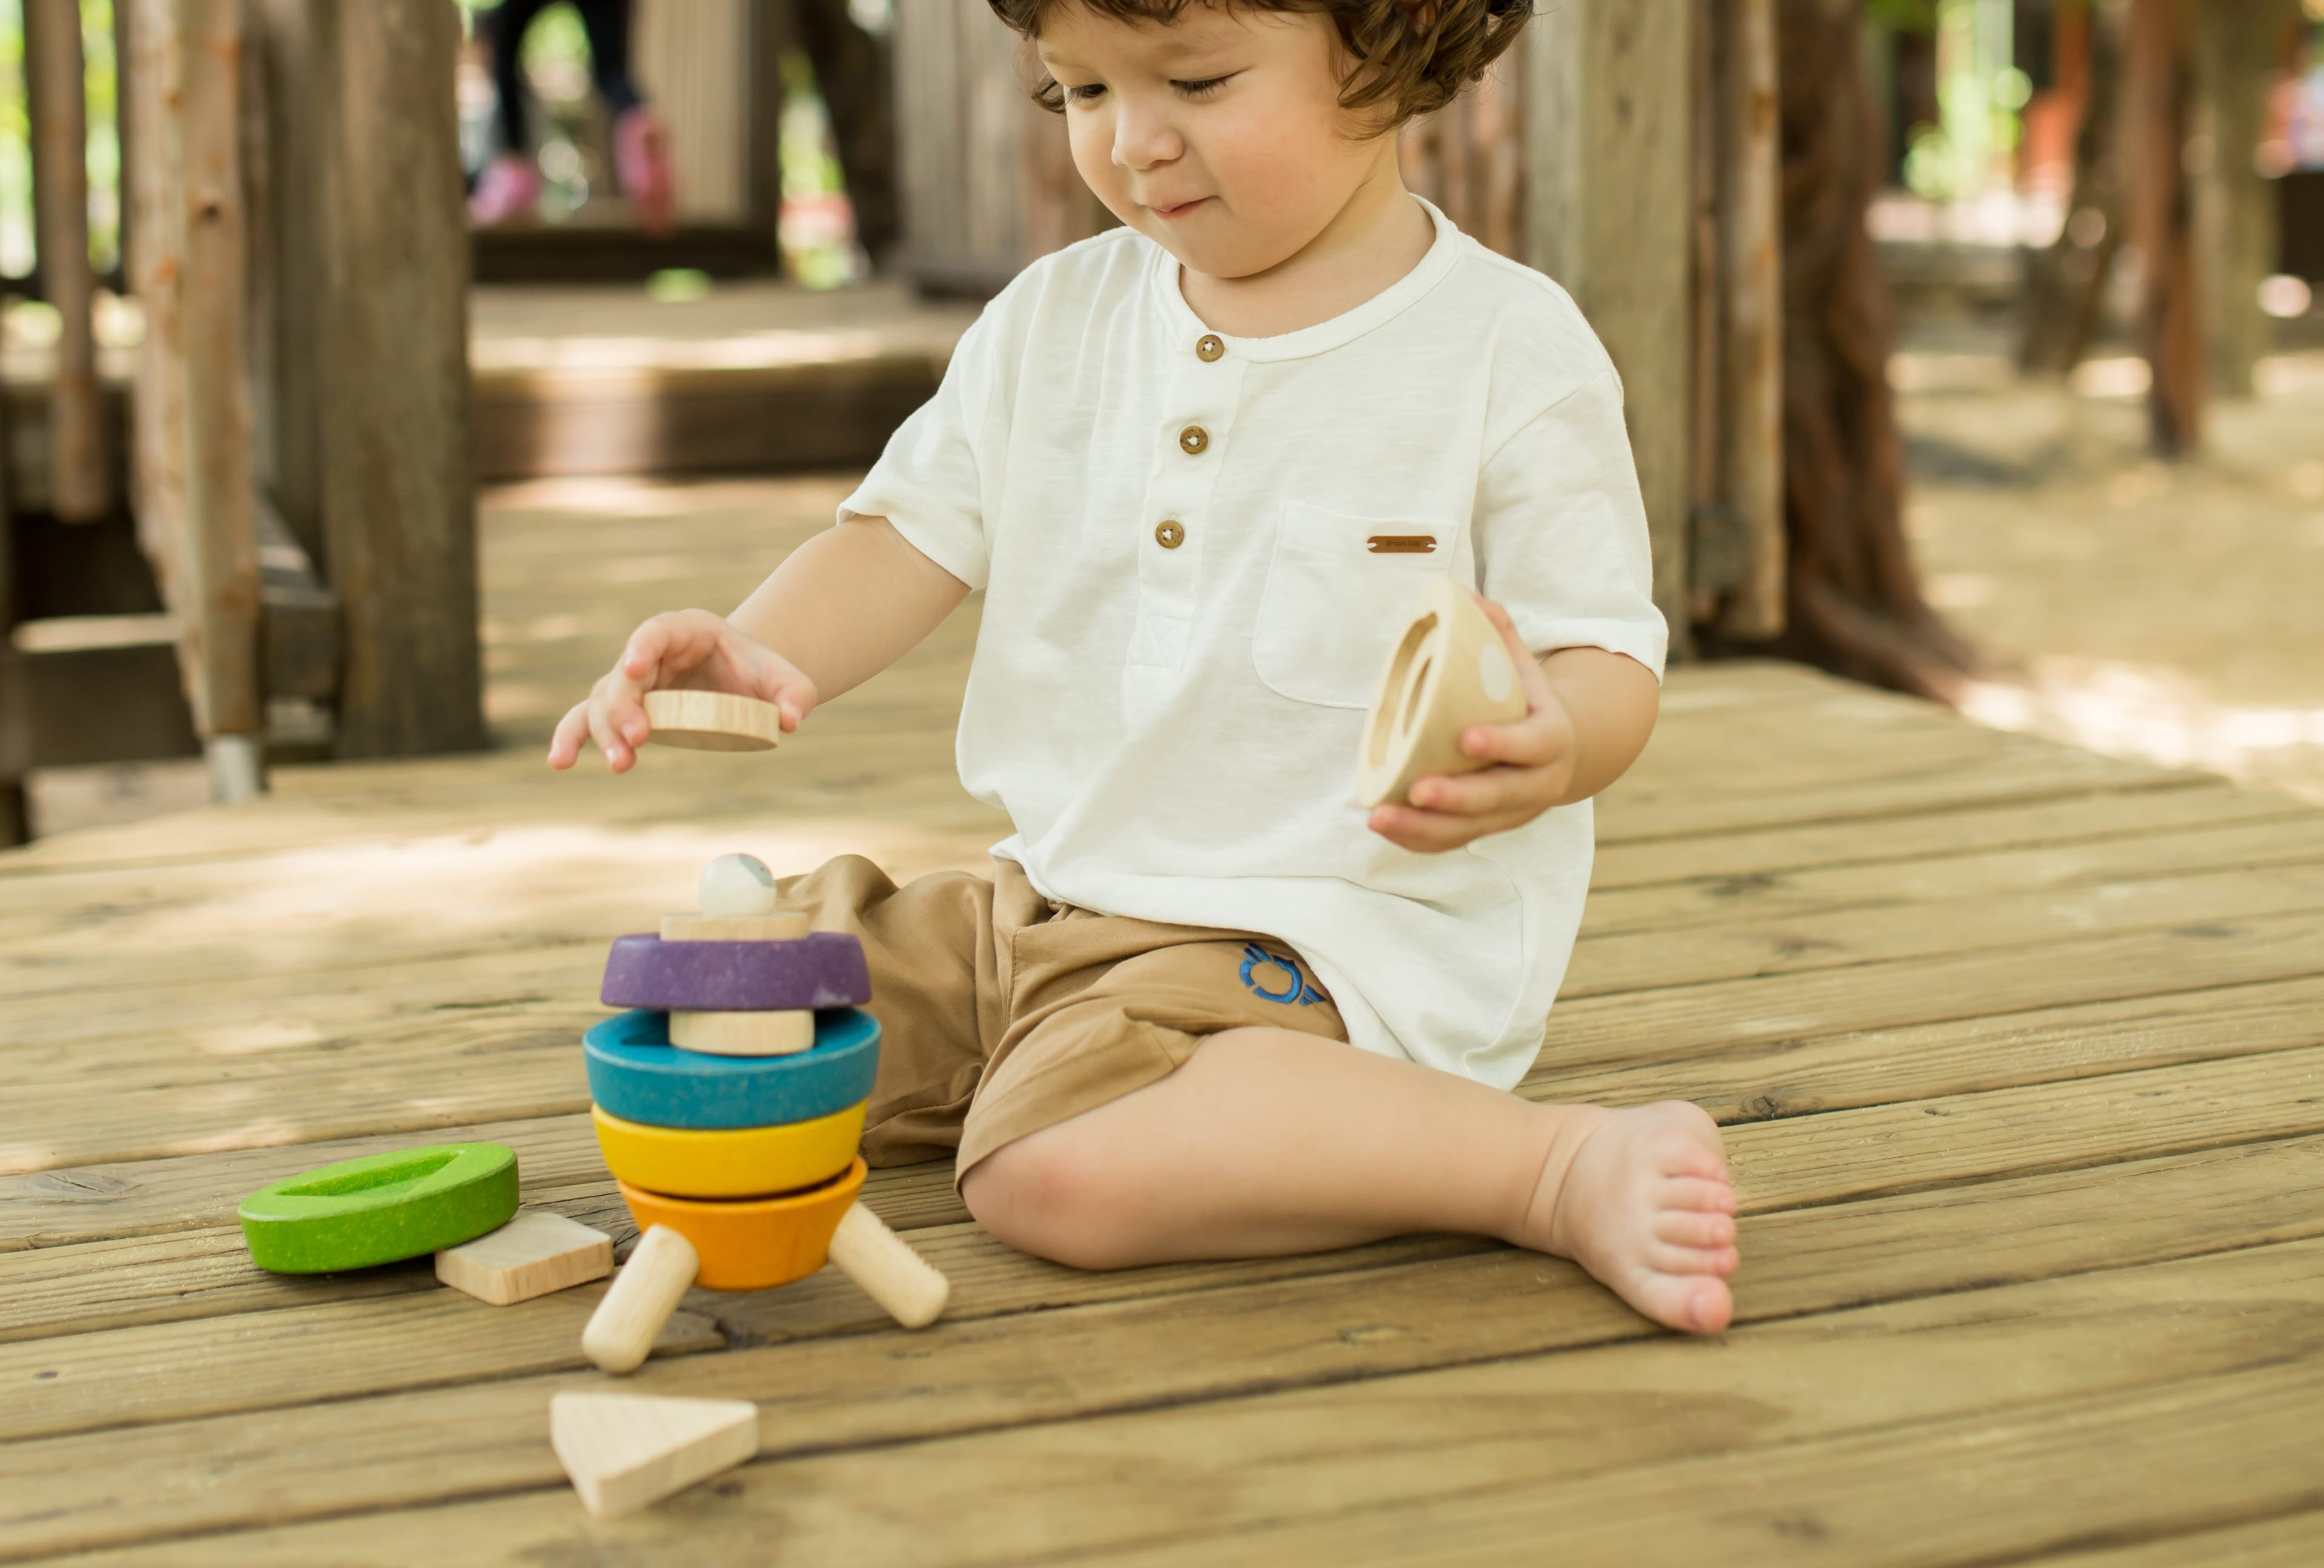 5694_PlanToys_STACKING_ROCKET_Learning_and_Education_Mathematical_Problem_Solving_Language_and_Communications_Imagination_18m_Wooden_toys_Education_toys_Safety_Toys_Non-toxic_3.jpg